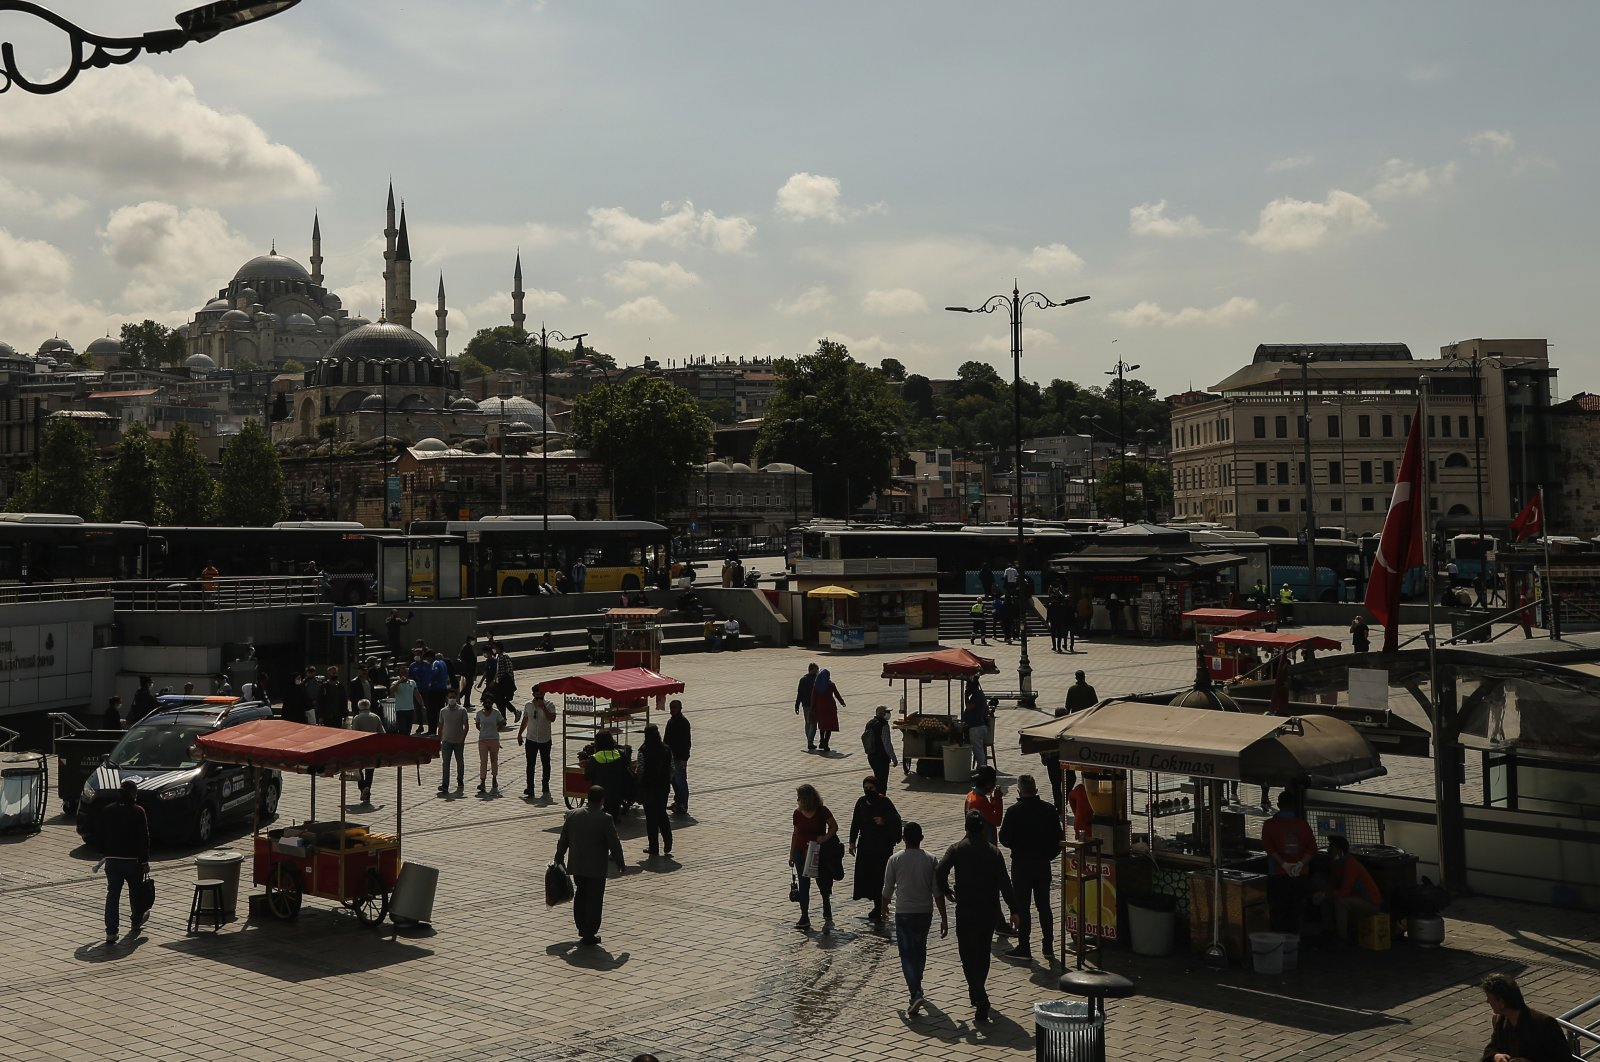 People walk in Istanbul, as shops reopen following weeks of closures due to the coronavirus pandemic, June 1, 2020. (AP Photo)